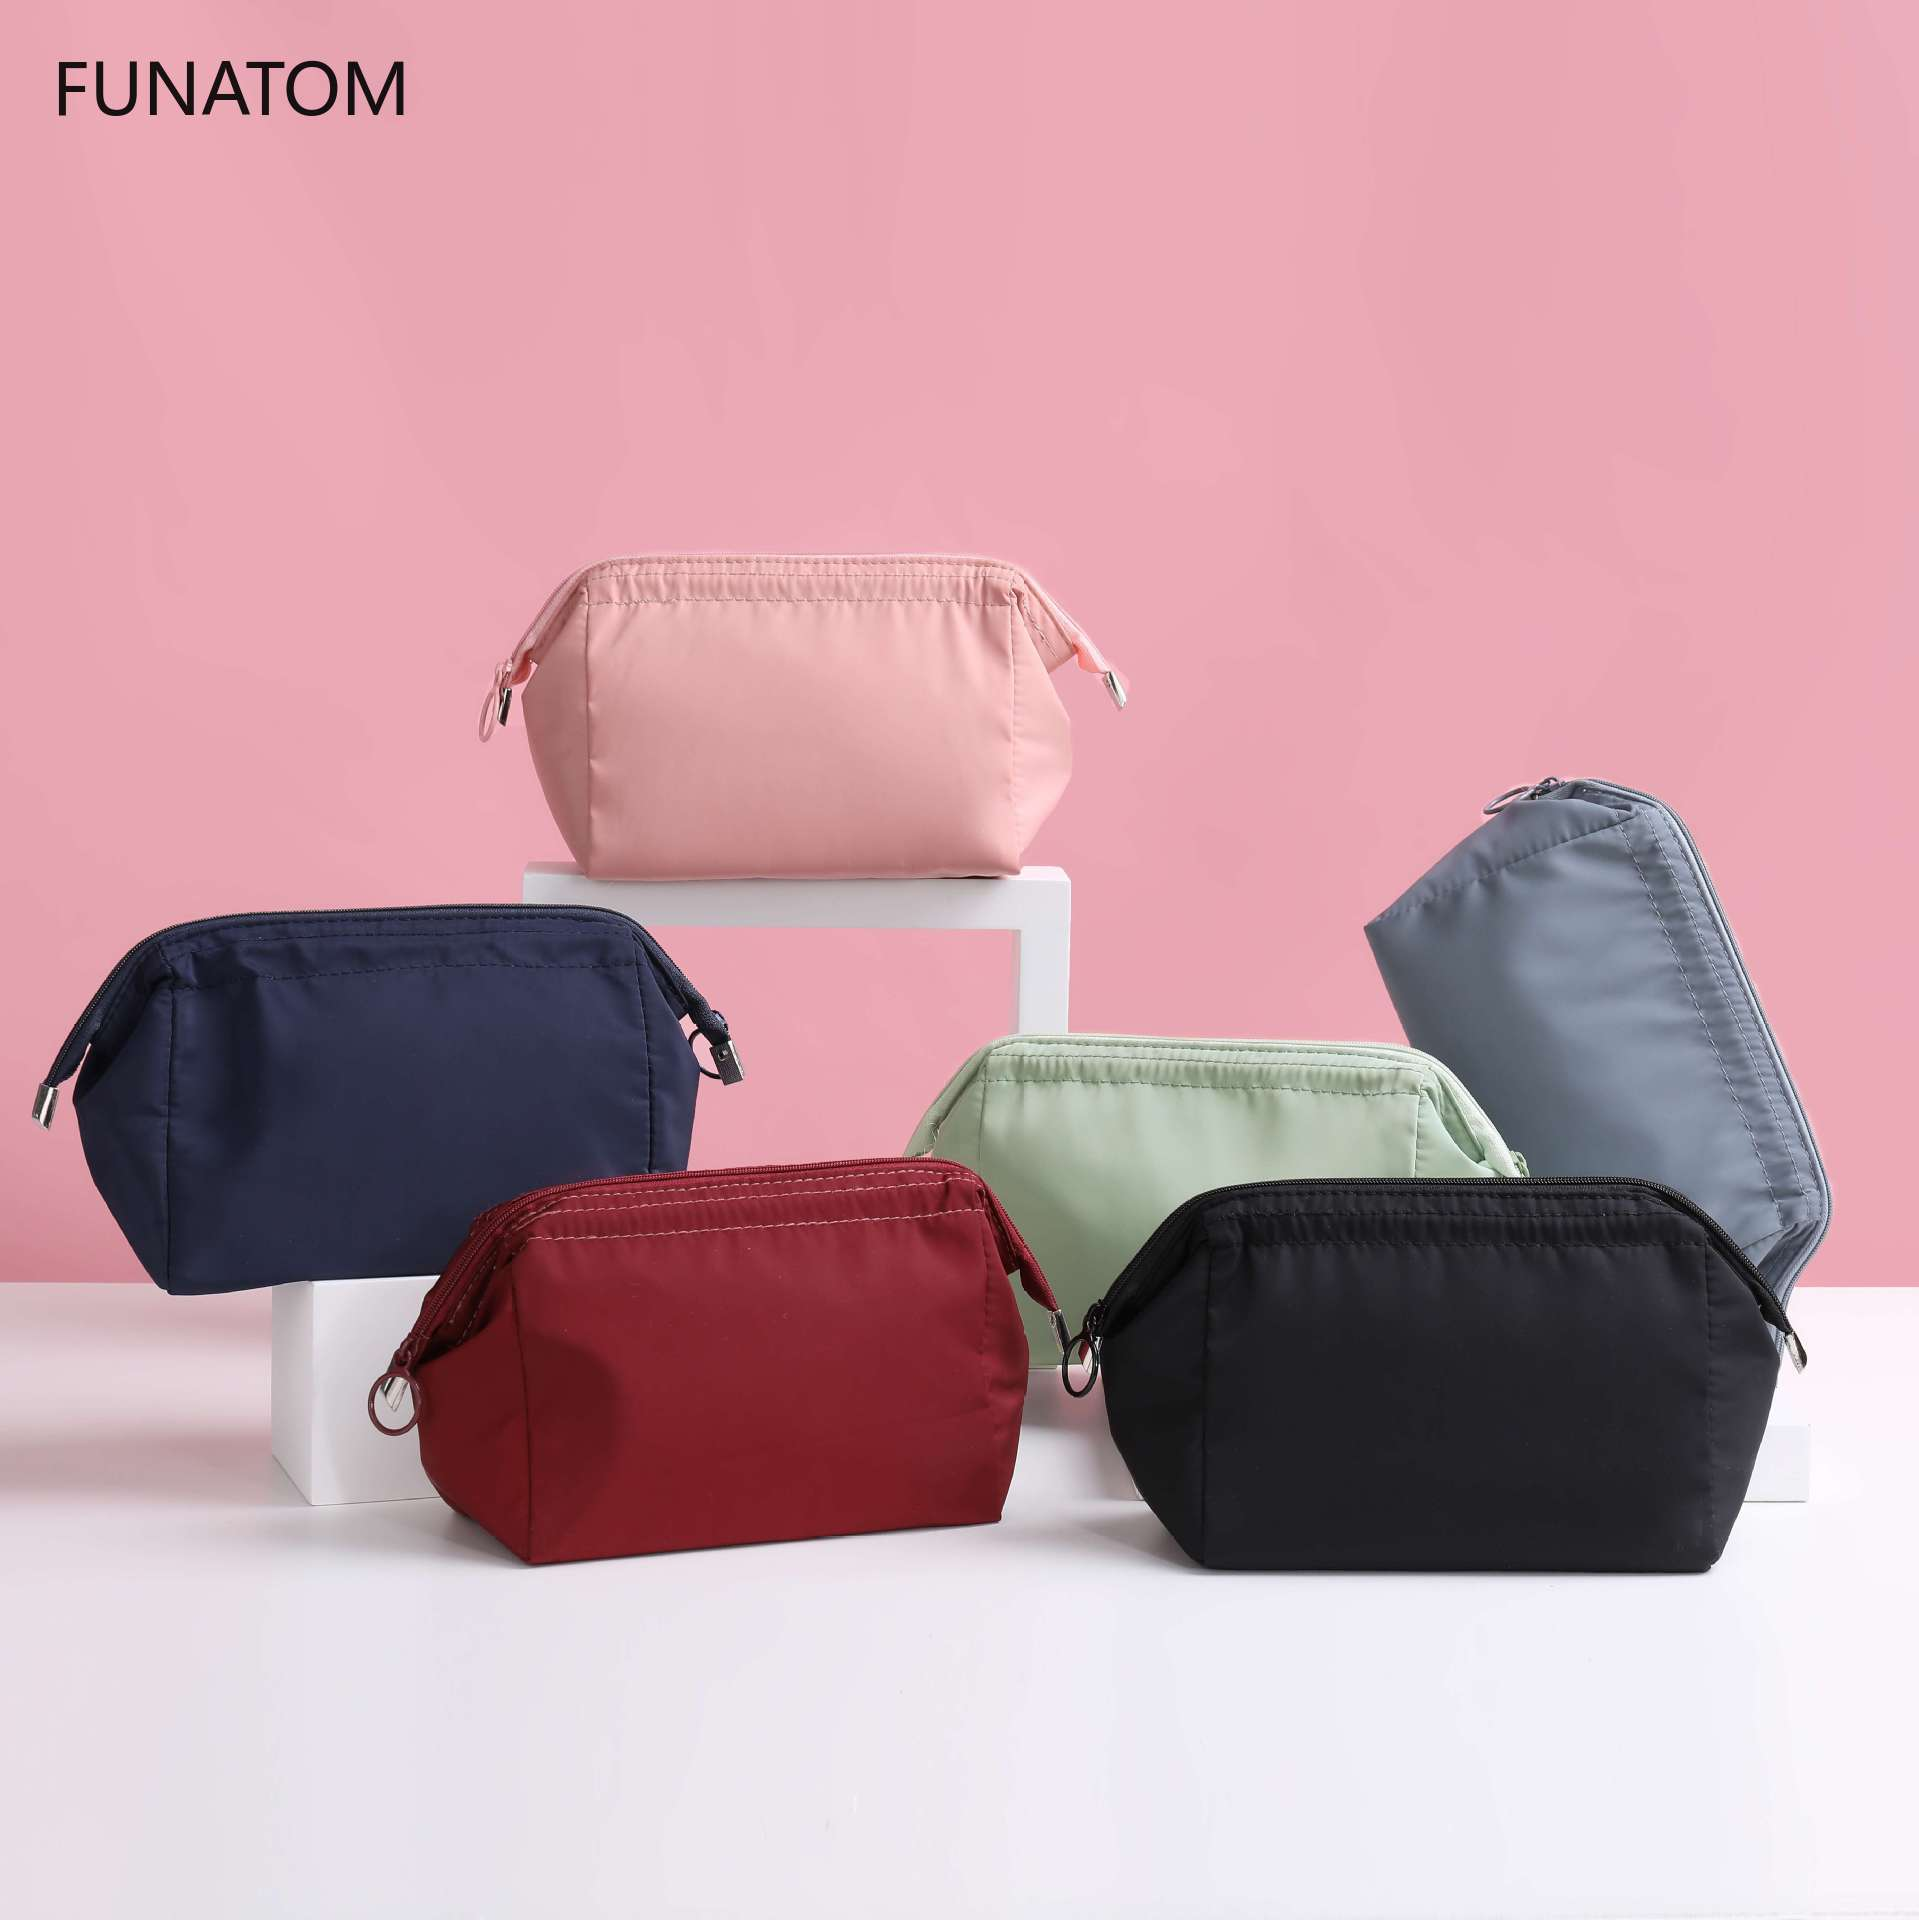 New Women Non-woven Travel Portable Waterproof Cosmetic Bag Makeup Case Pouch Toiletry Organizer Storage Black Green Pink